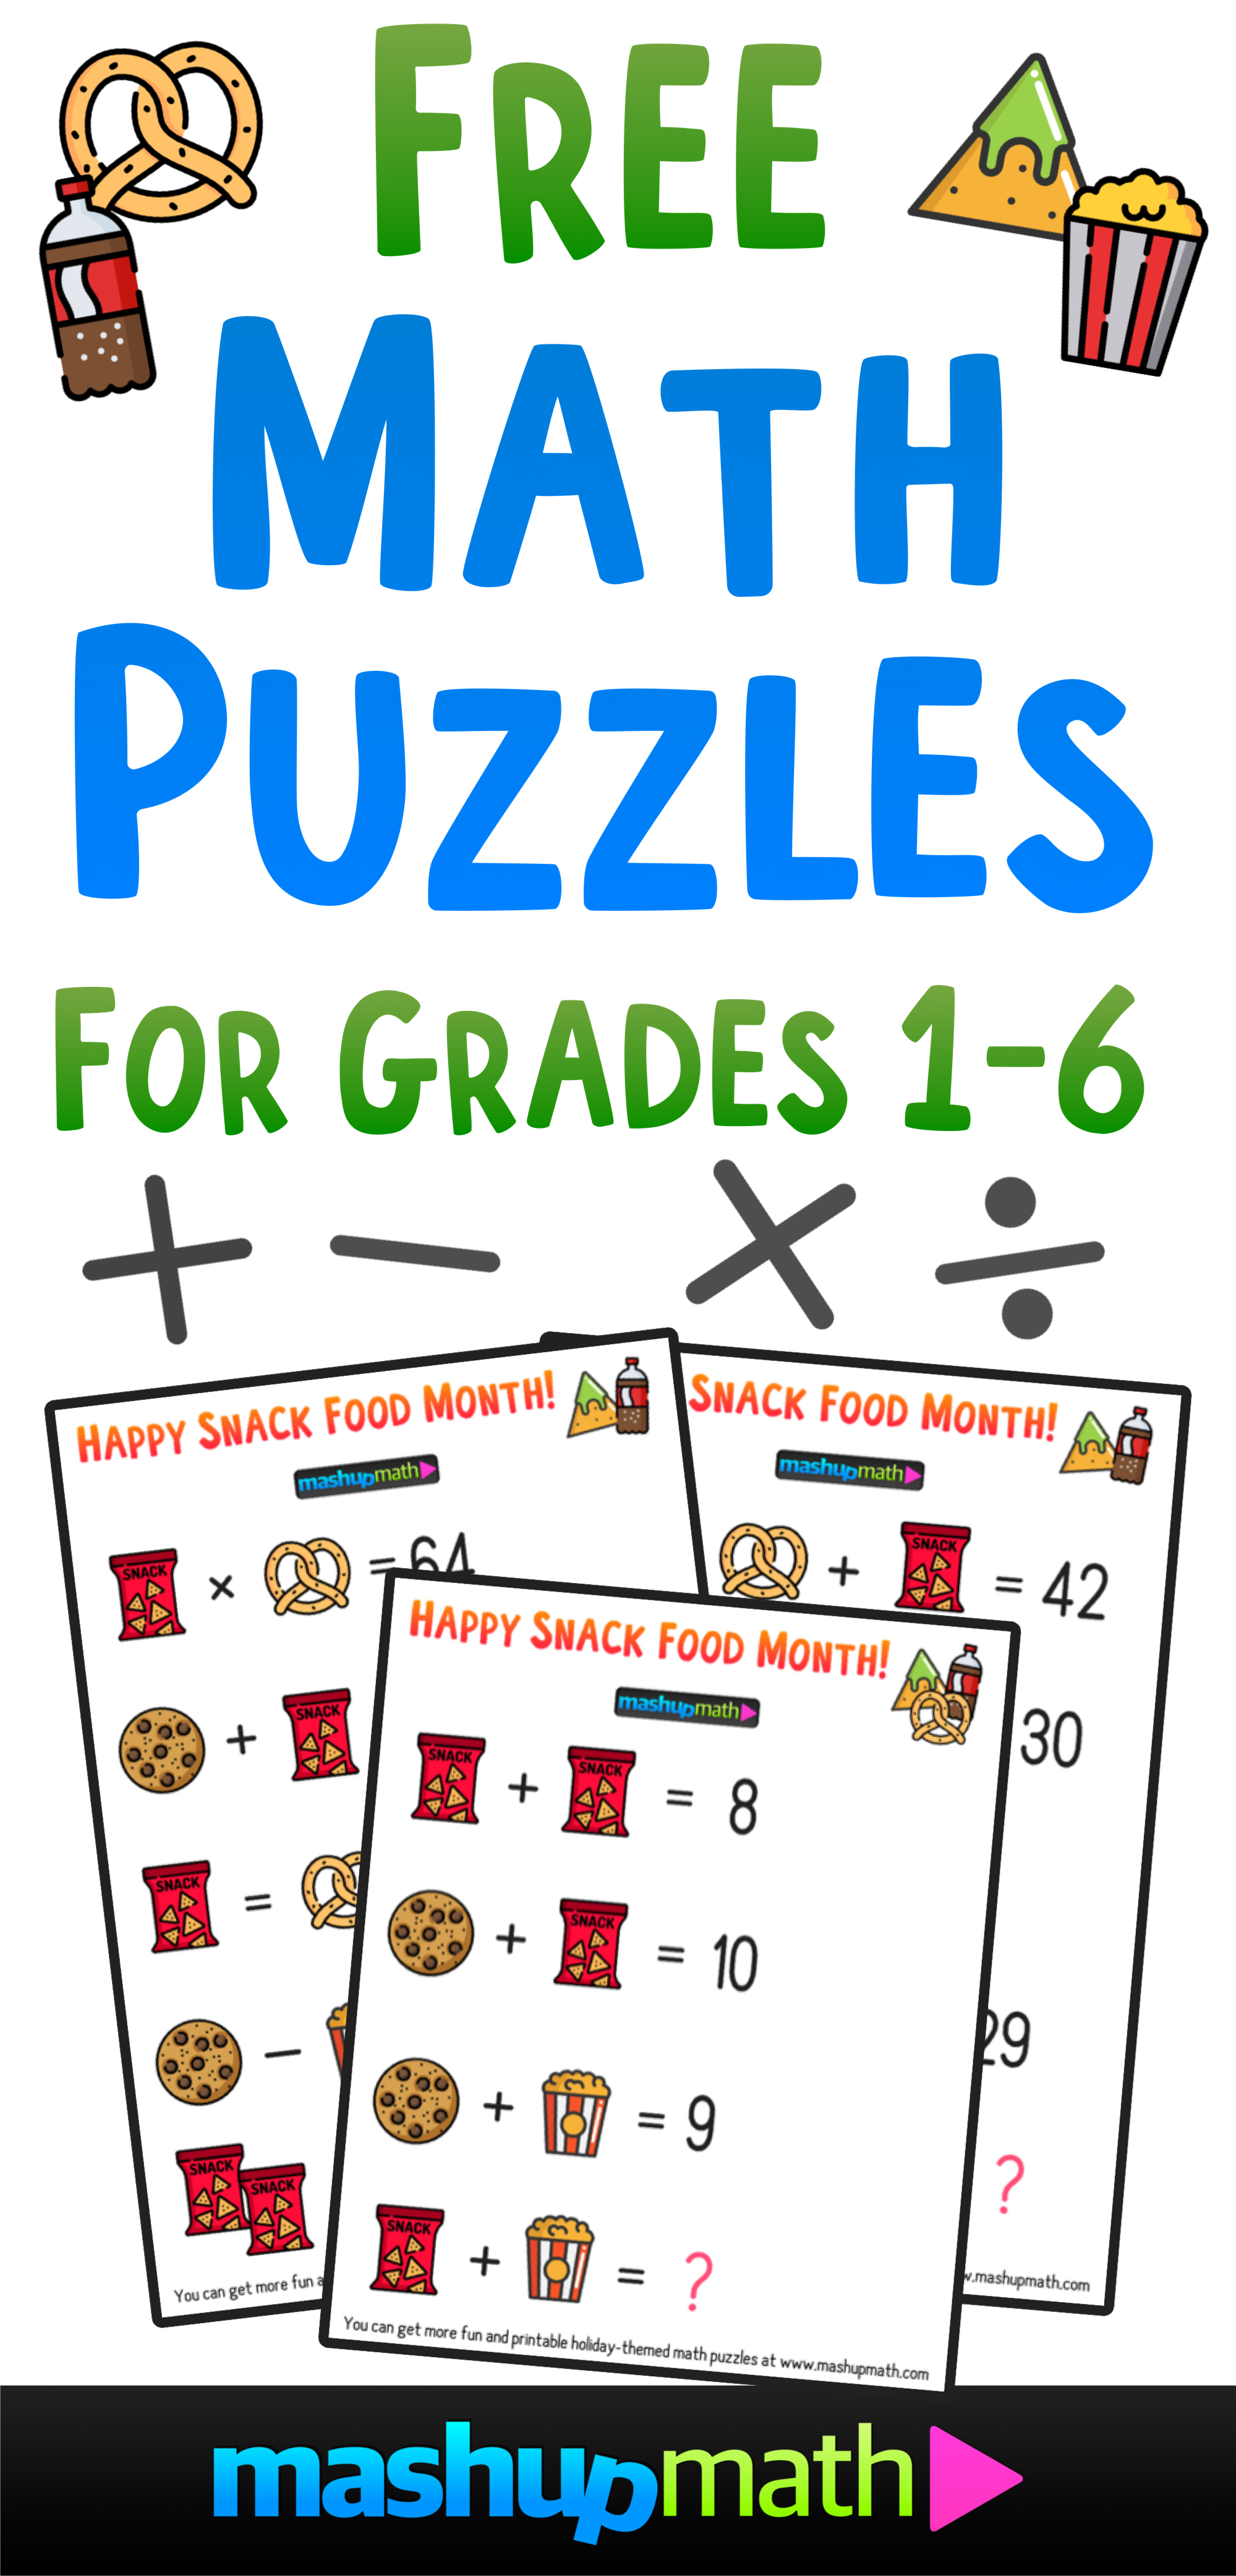 hight resolution of Free Math Brain Teaser Puzzles for Kids in Grades 1-6 to Celebrate Snack  Food Month! — Mashup Math